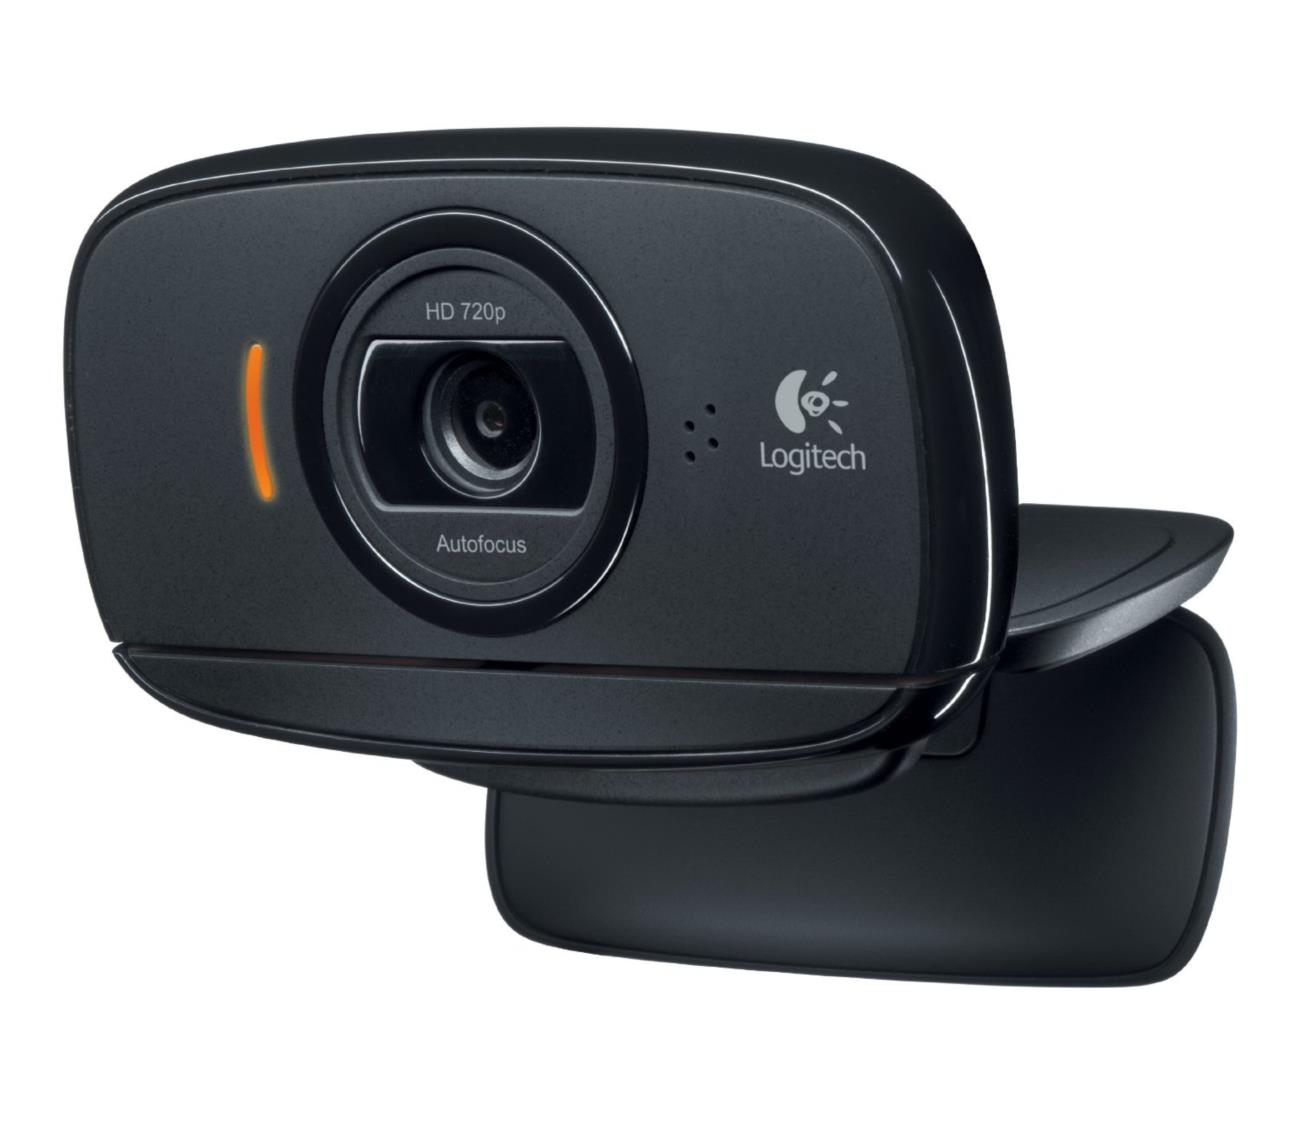 Logitech logitech c670i cmos hd video calling webcam with usb2 0 resolution 1024 768 support official test for pc laptop retail package